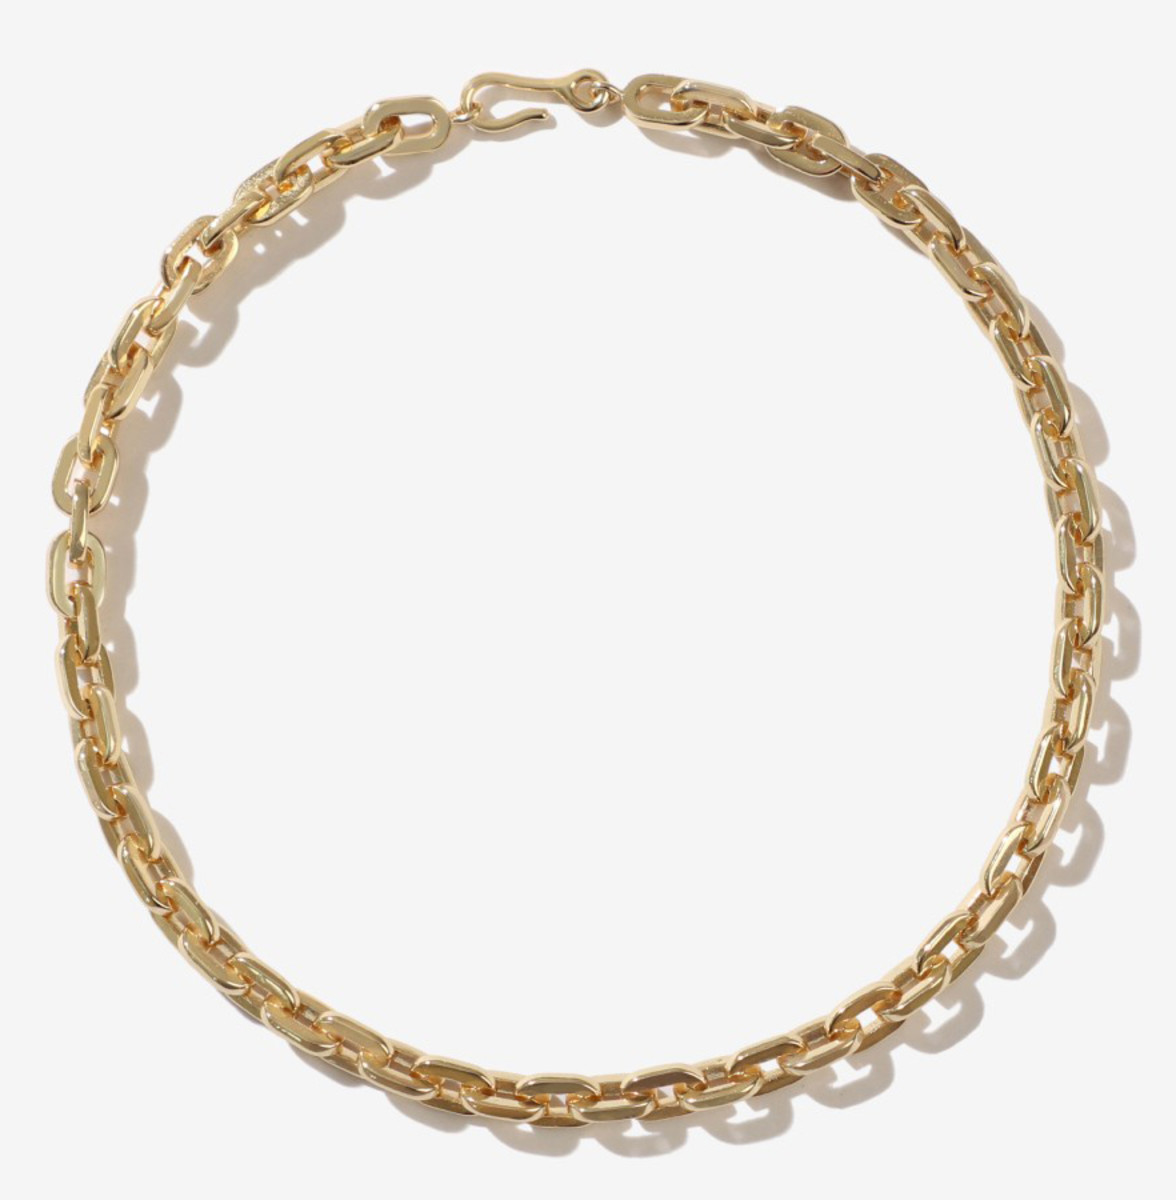 Adornmonde Elihu Gold Chain Anklet, $106, available here.